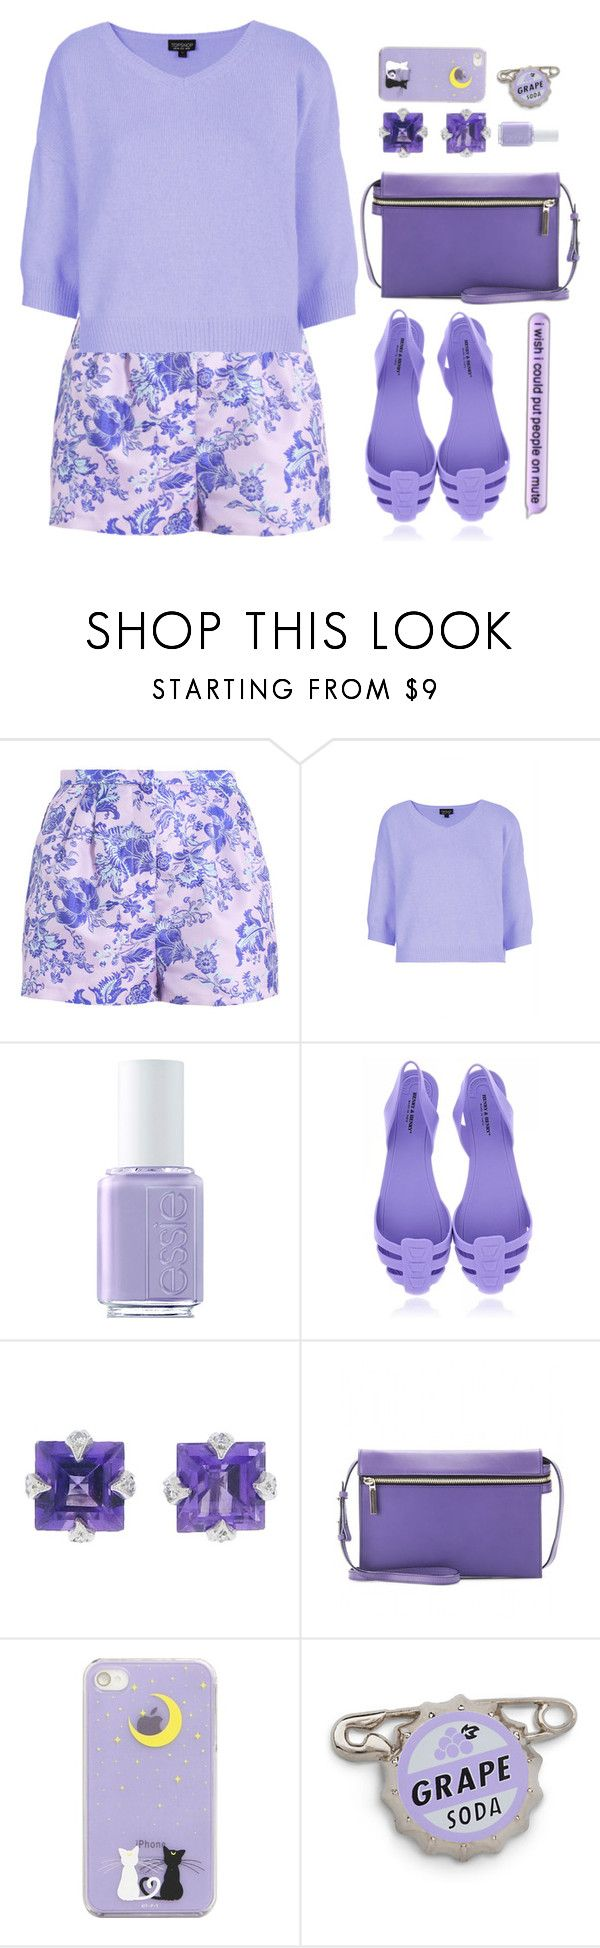 """""""Violet Hill"""" by sazyc ❤ liked on Polyvore featuring Topshop, Essie, Cathy Waterman, Victoria Beckham, purple, lavender and SongSet"""